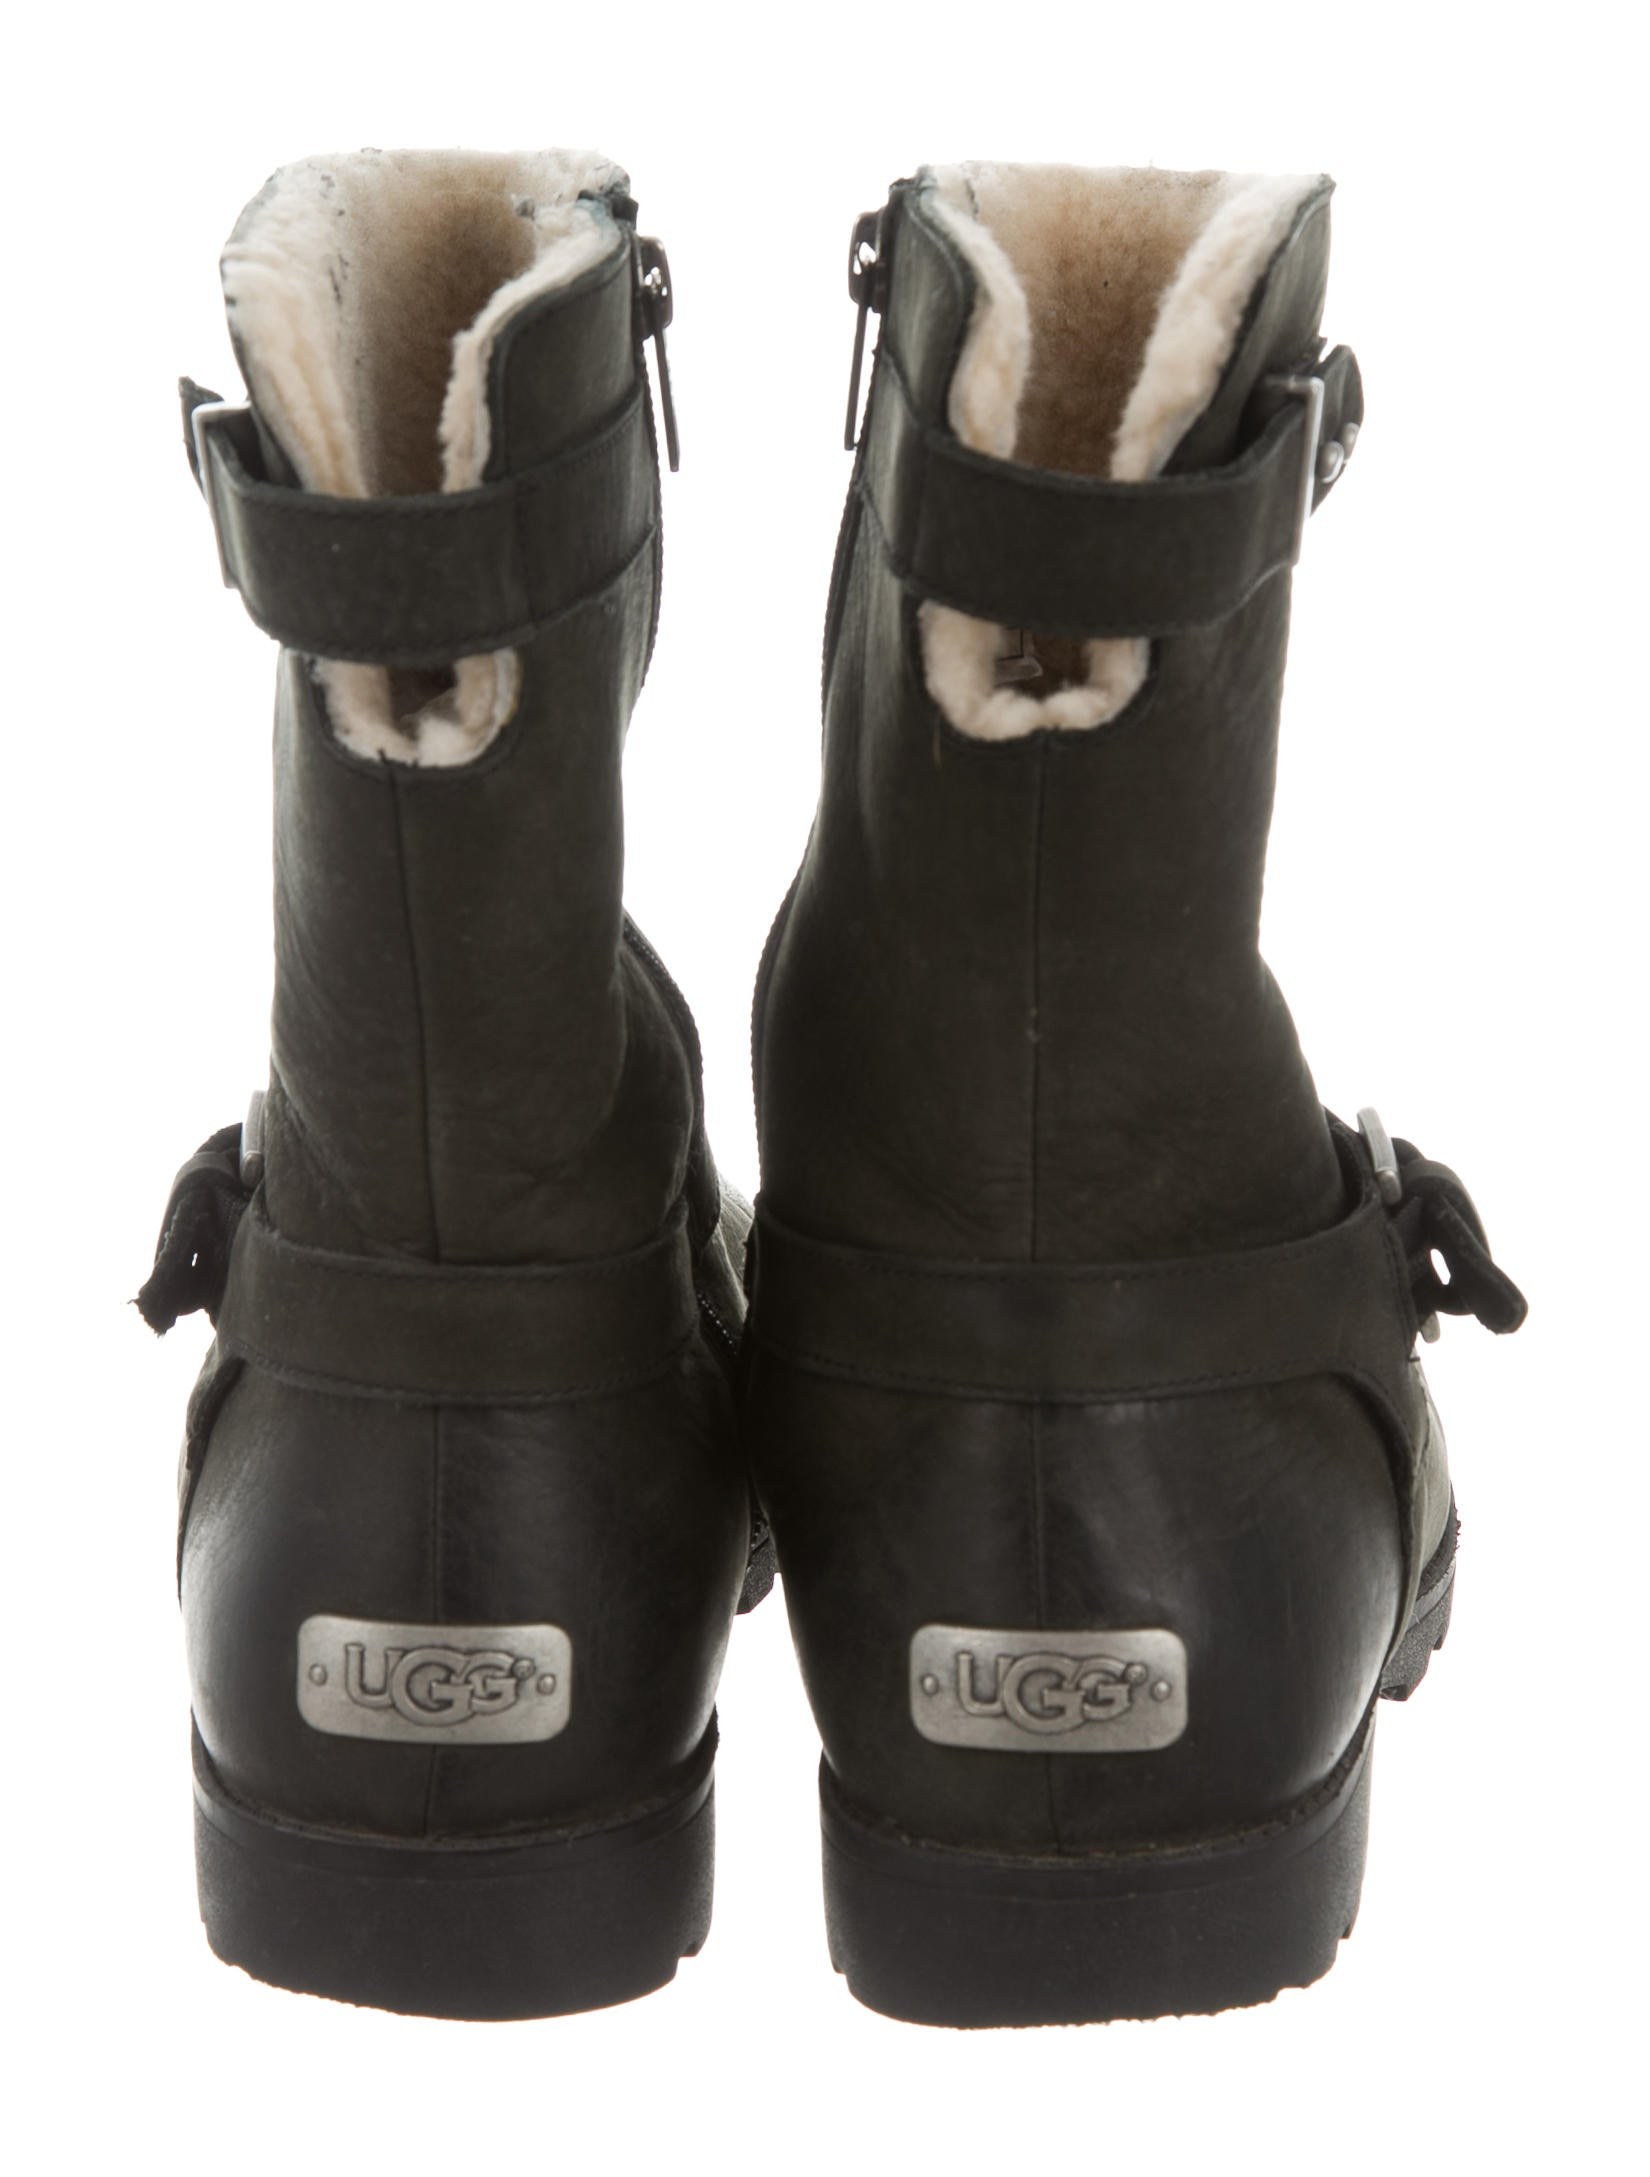 f26053065a7 Ugg Grandle Boots Office - cheap watches mgc-gas.com